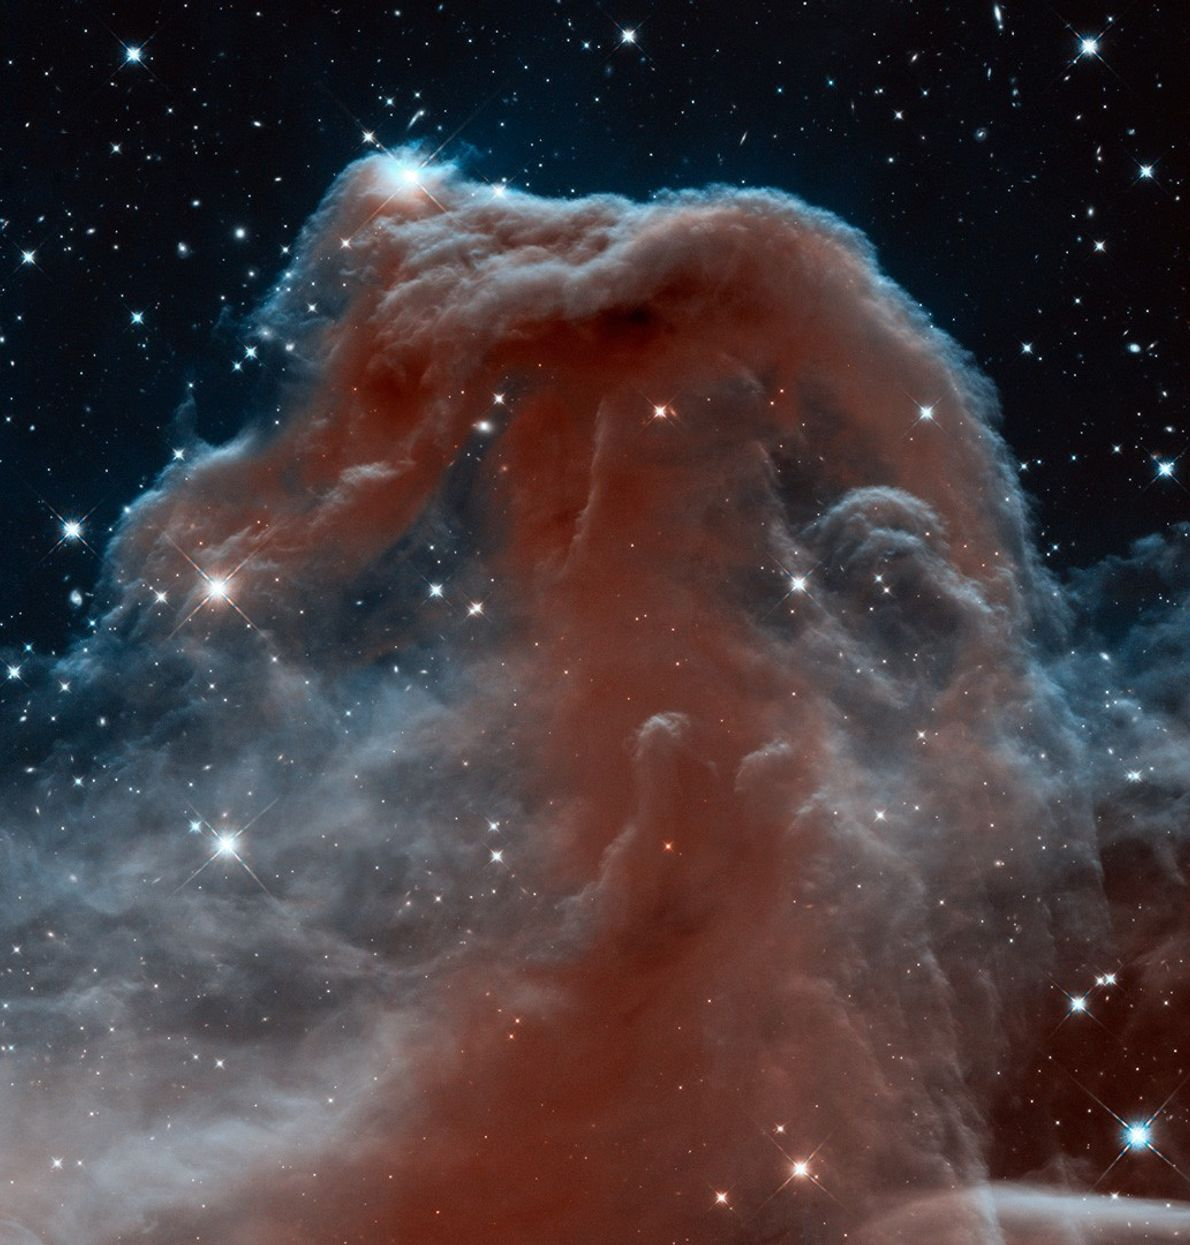 Hubble's Wide Field Camera 3 looks through the Horsehead Nebula in a uniquely detailed infrared image.